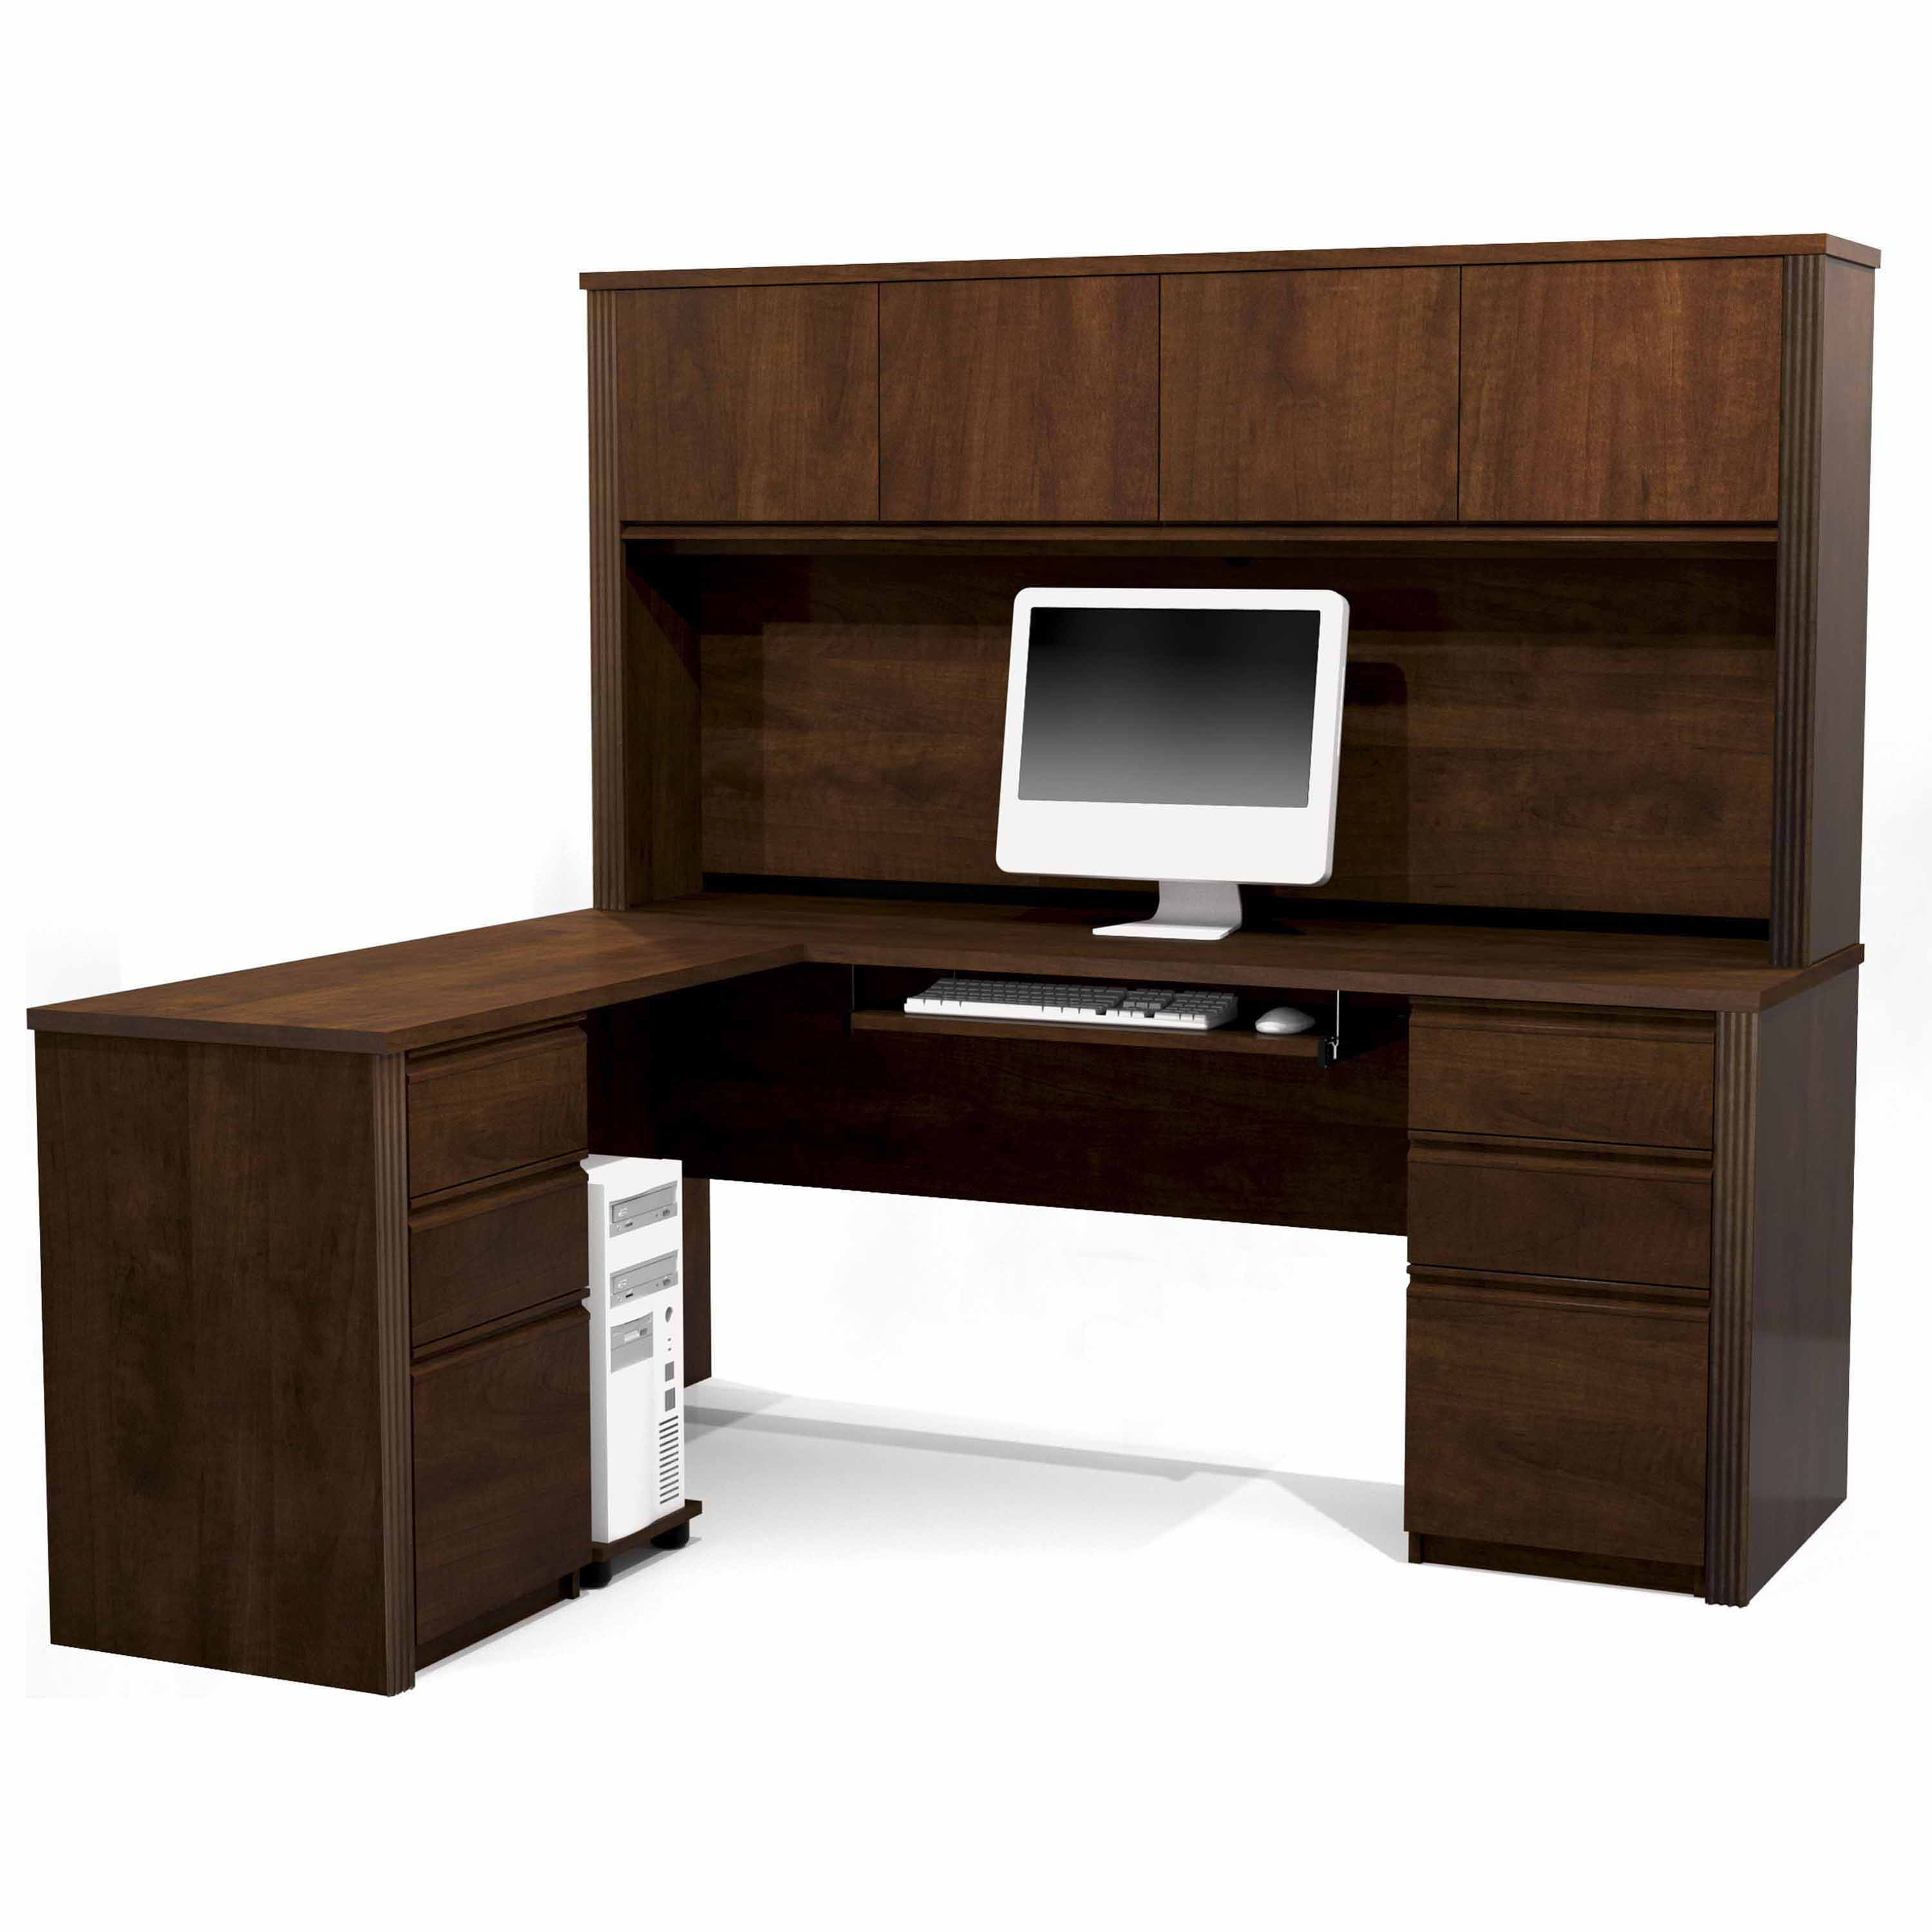 Prestige + L-shaped workstation including two pedestals in Chocolate